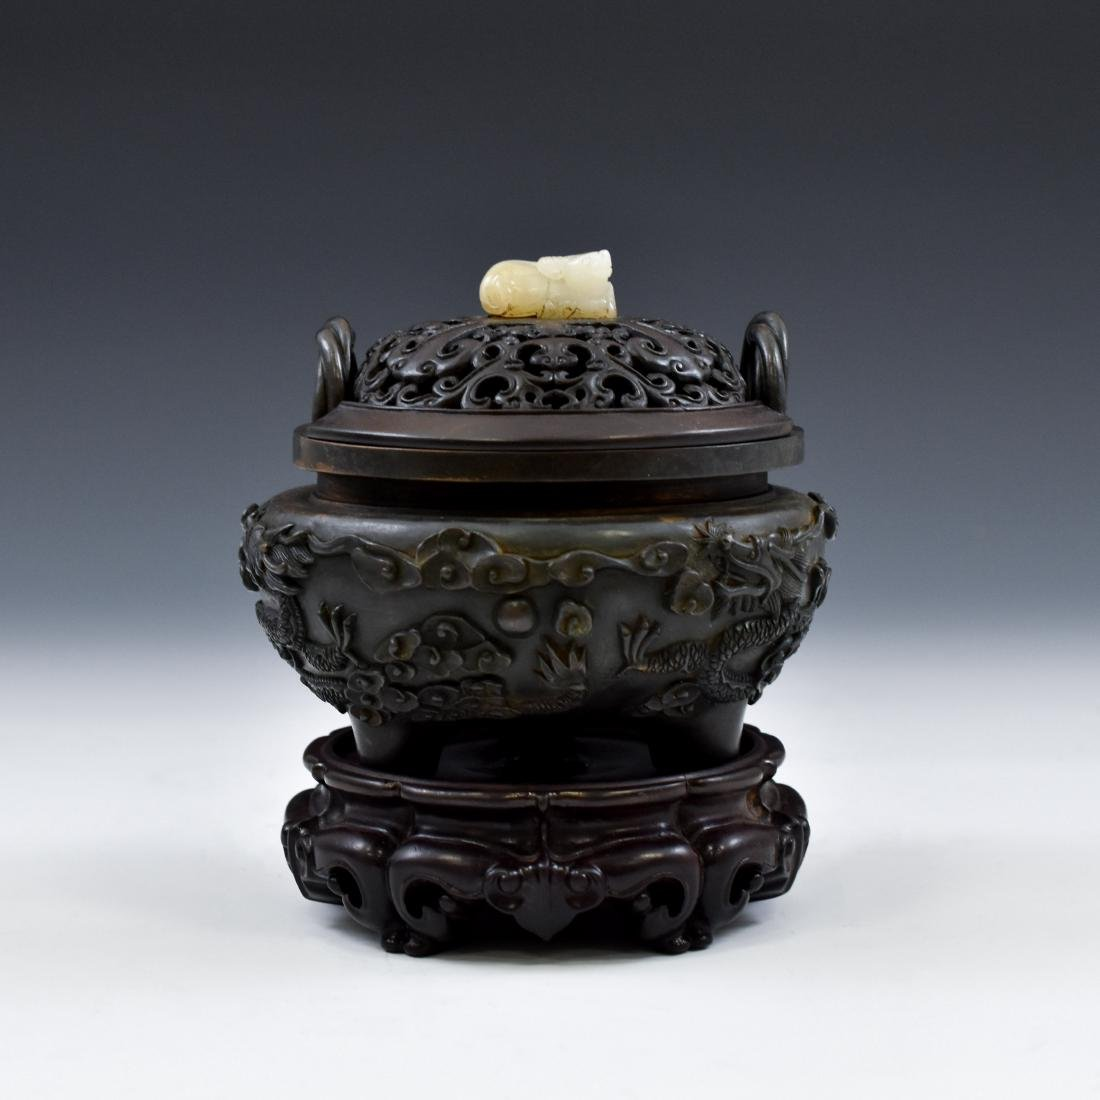 MING BRONZE DRAGON TRIPOD CENSER WITH JADE FINIAL